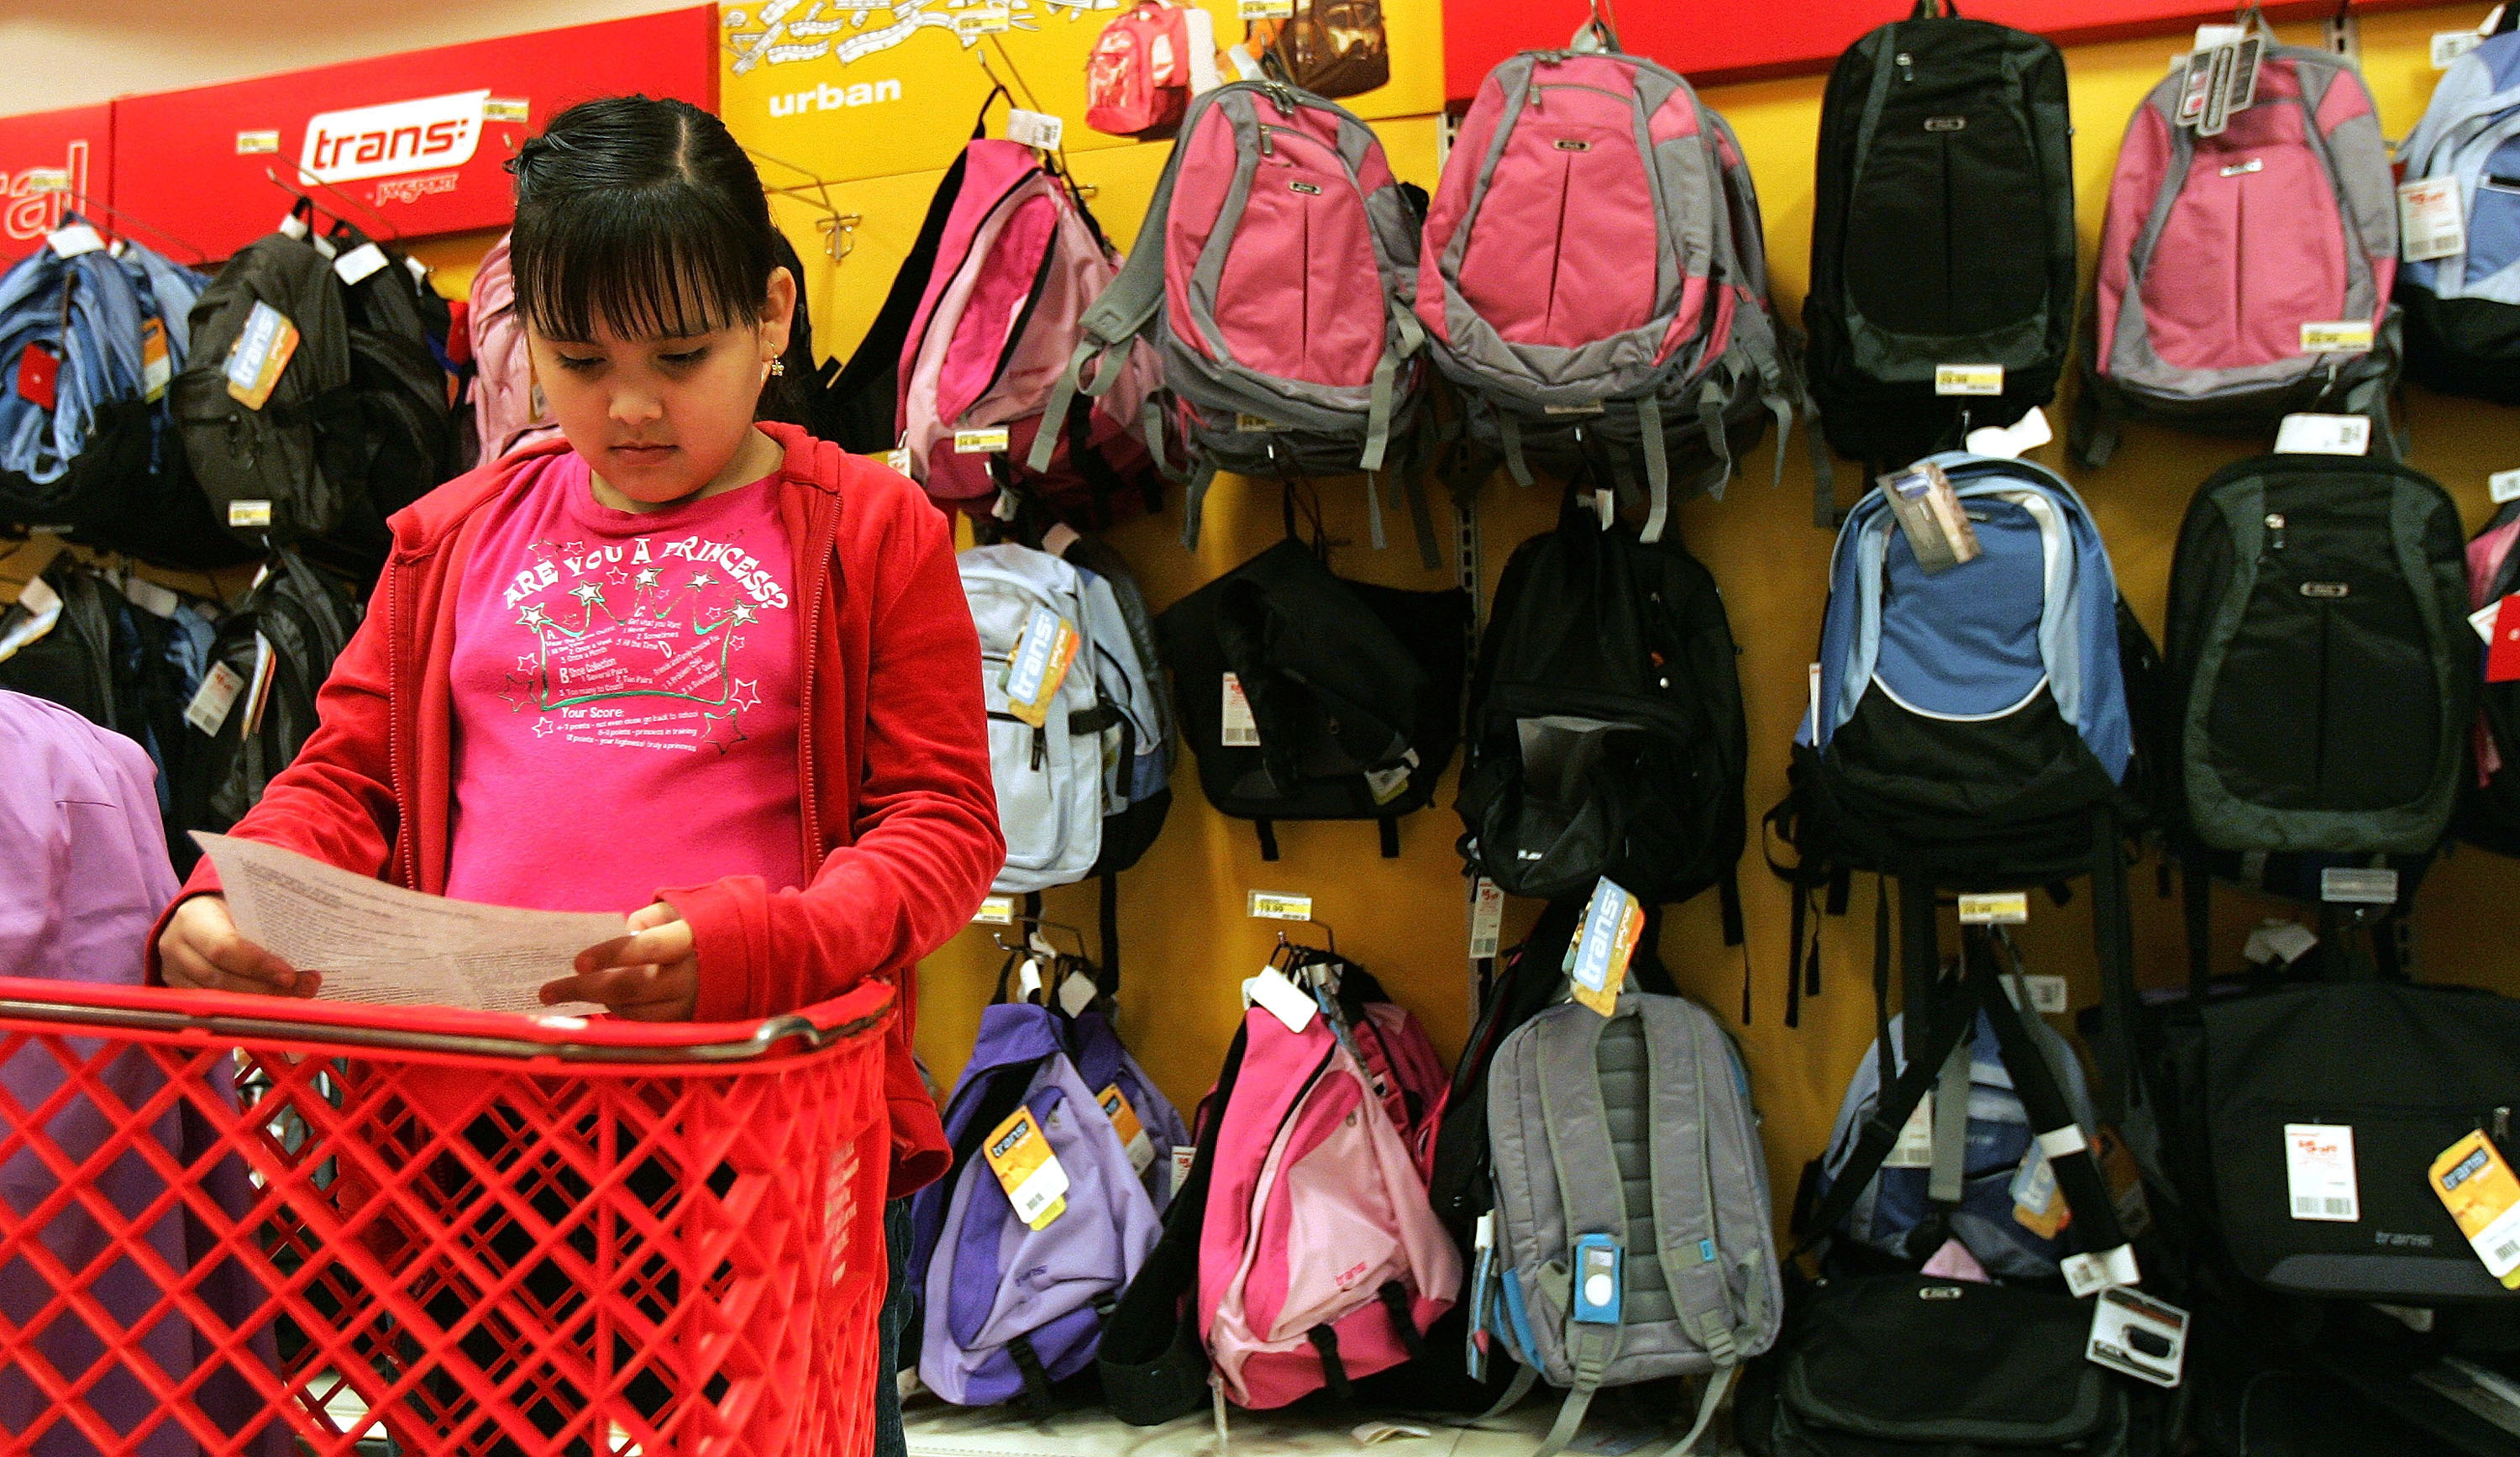 atricia Zaragoza, 9, checks her back-to-school shopping list at a Target store August 11, 2005 in Rosemont, Illinois. (Photo by Tim Boyle/Getty Images)